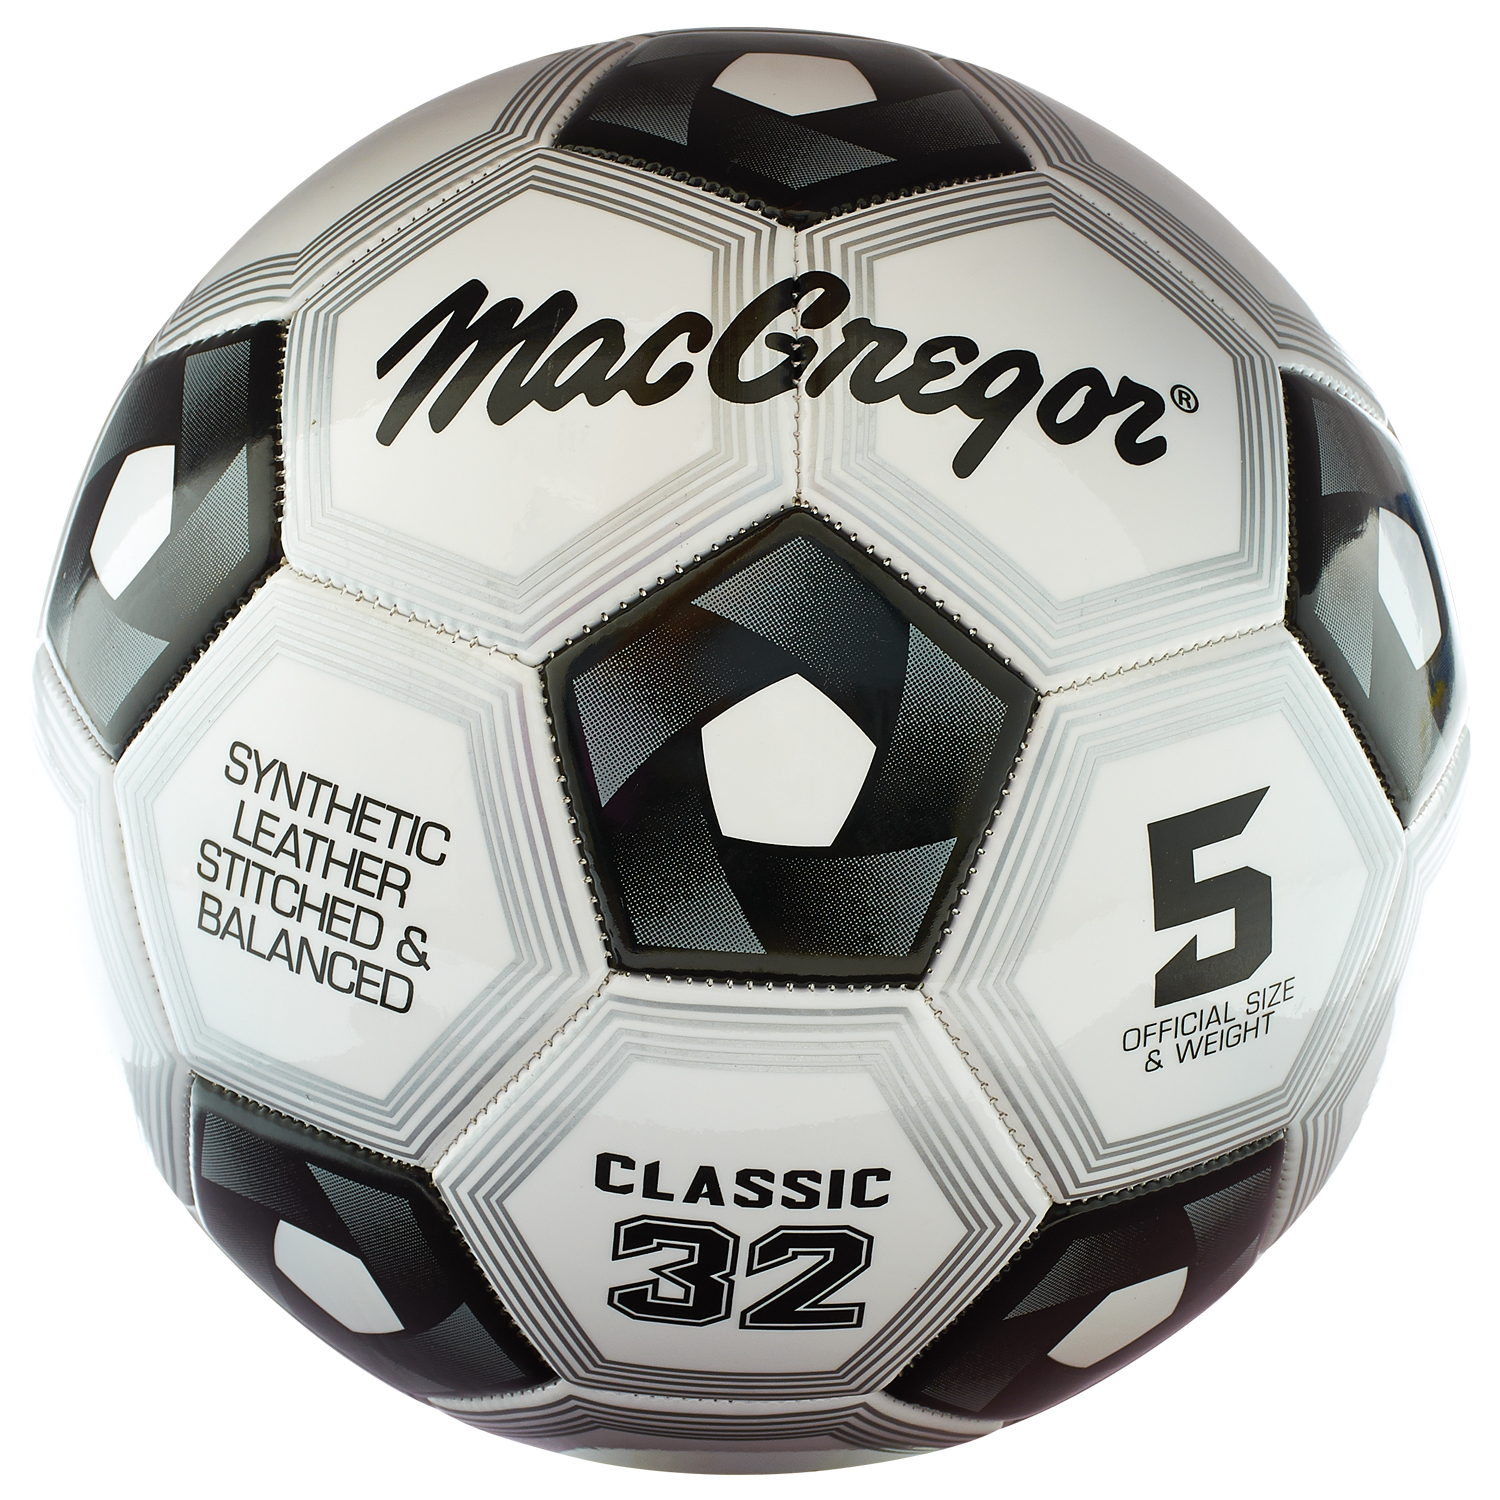 MacGregor® Size 5 Classic Soccer Ball